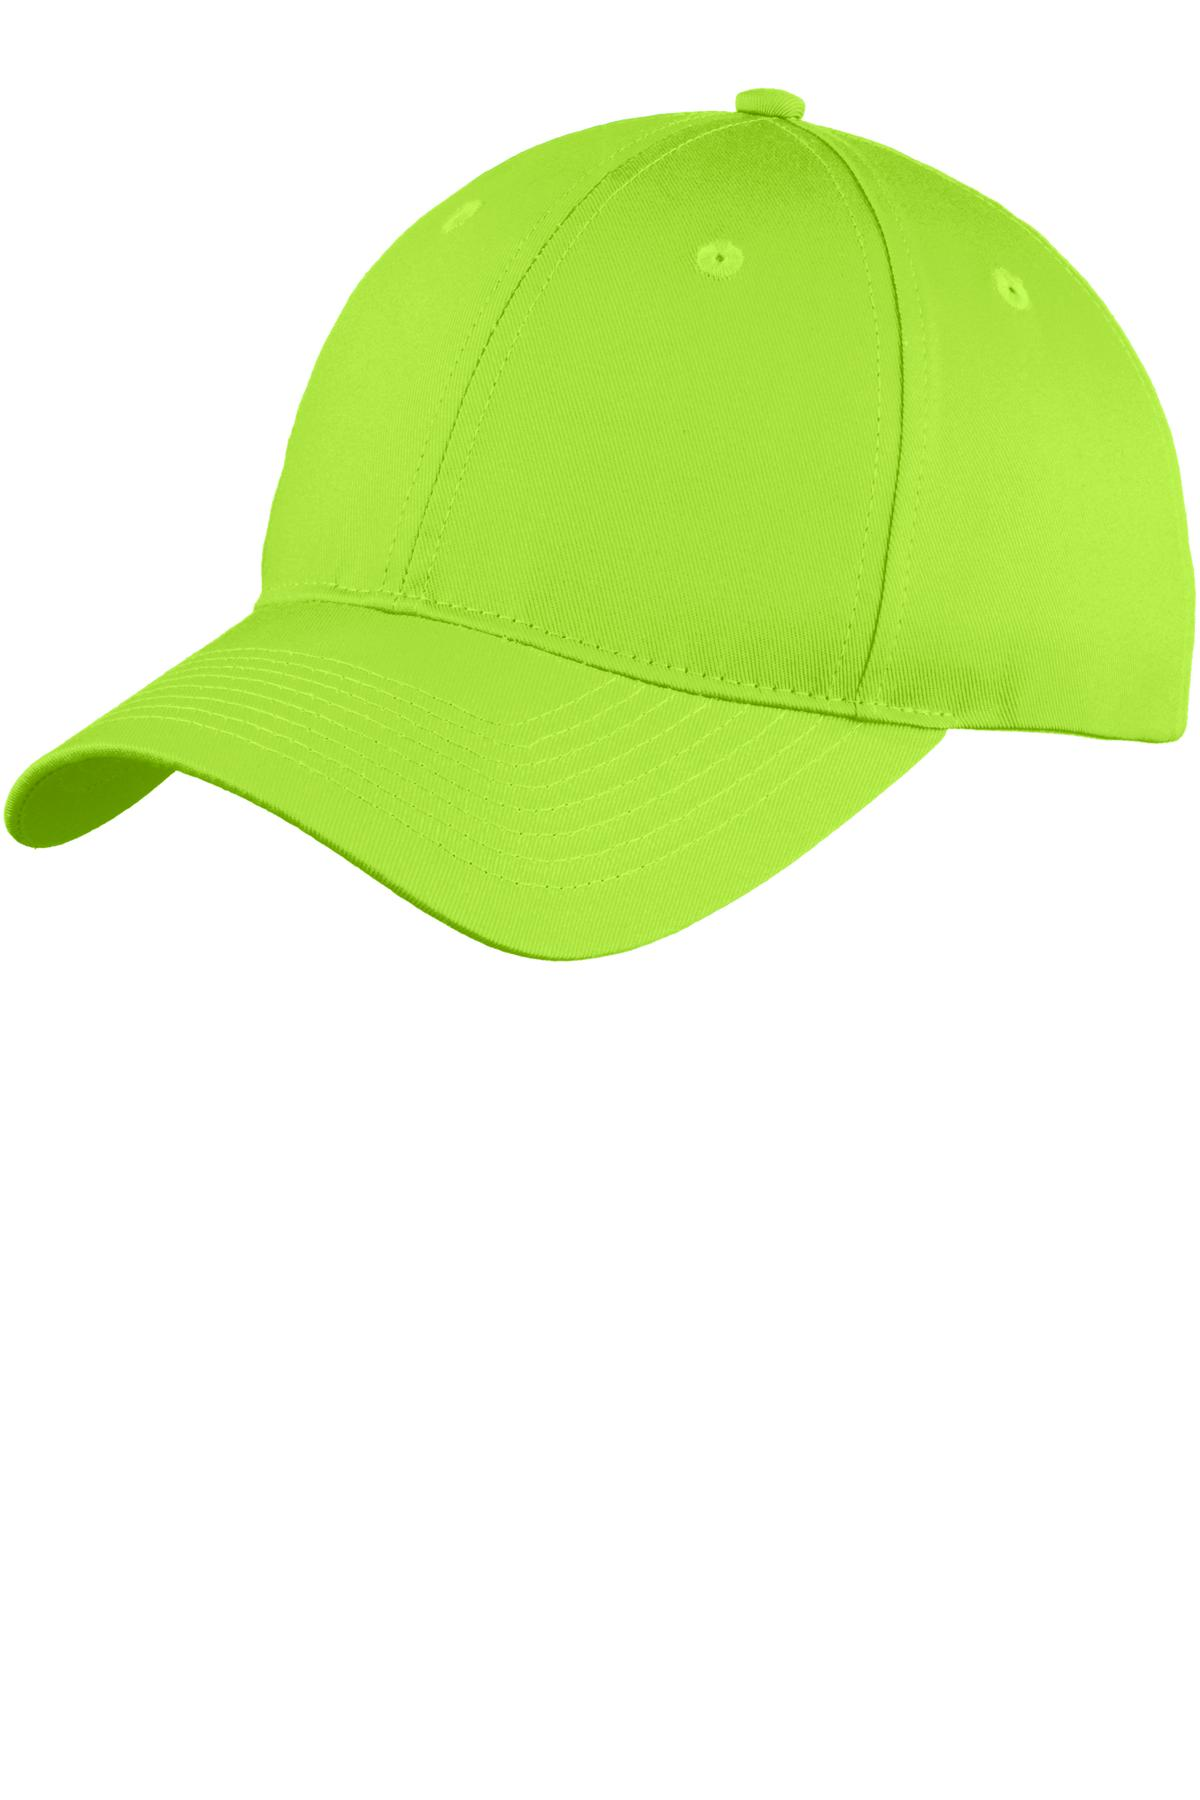 Port & Company ®  Six-Panel Unstructured Twill Cap. C914 - Lime